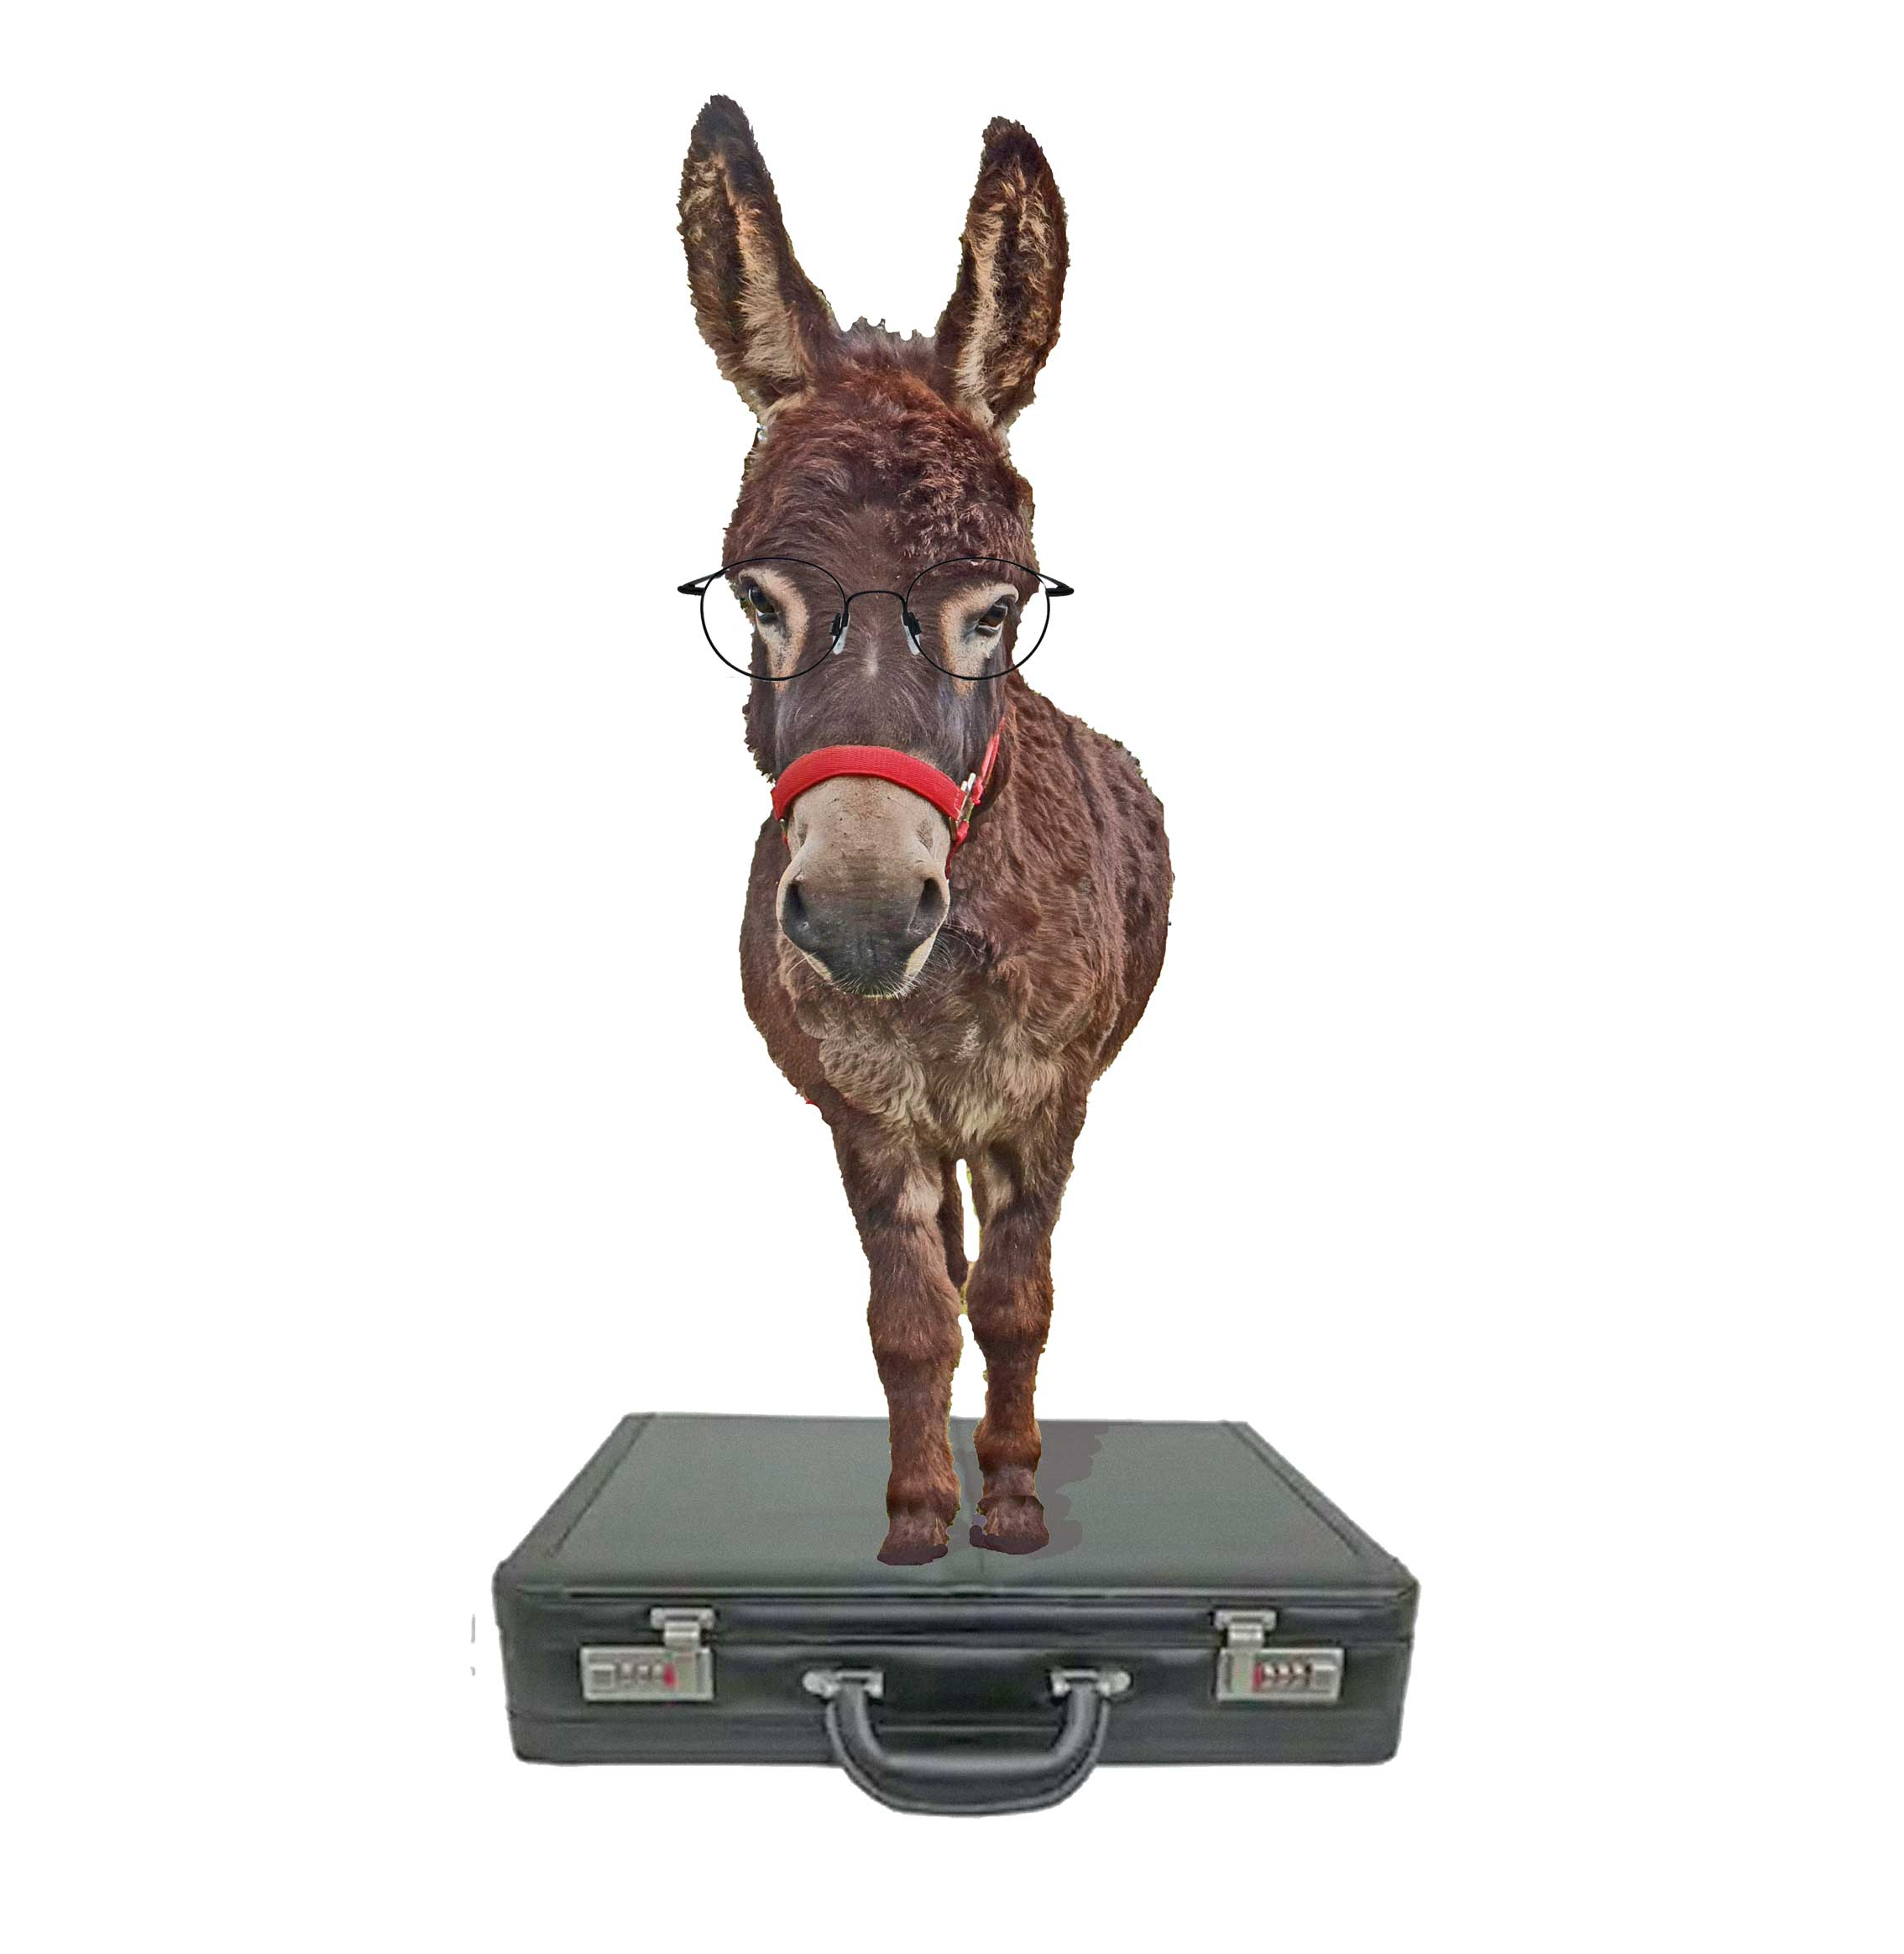 goose the donkey works at being an accountant